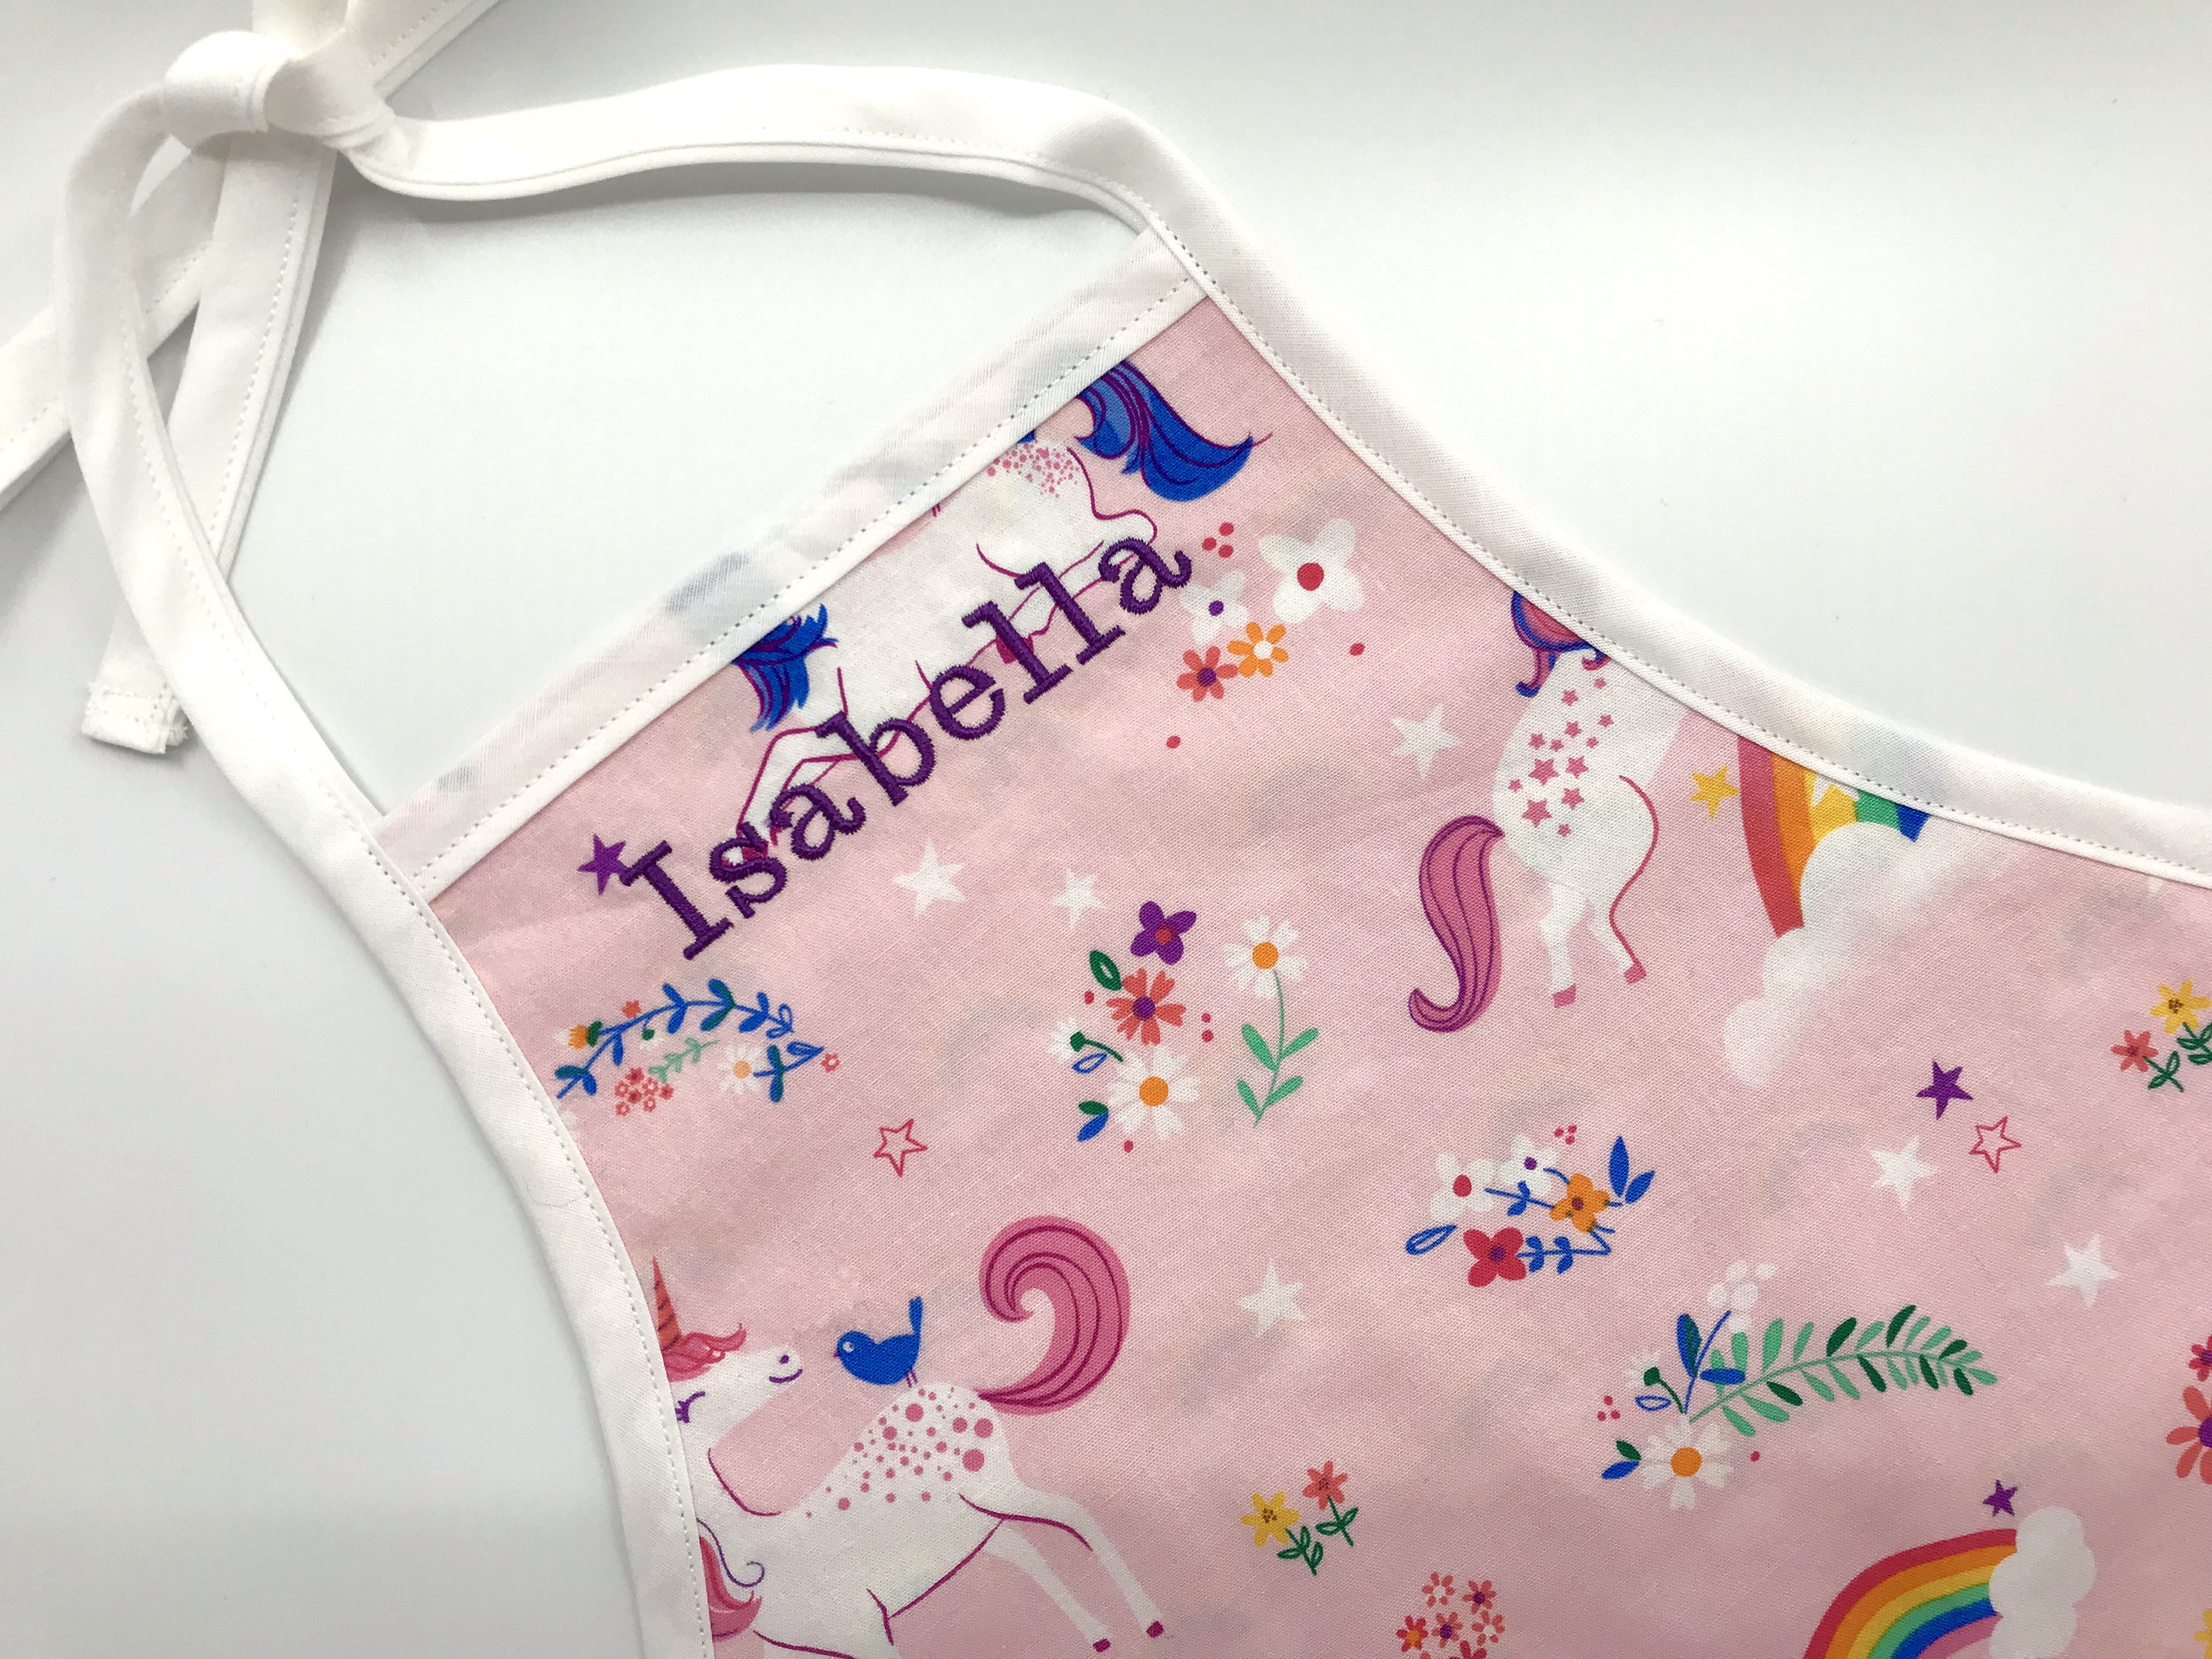 Pink unicorn apron with child's name. A personal gift for the holidays!